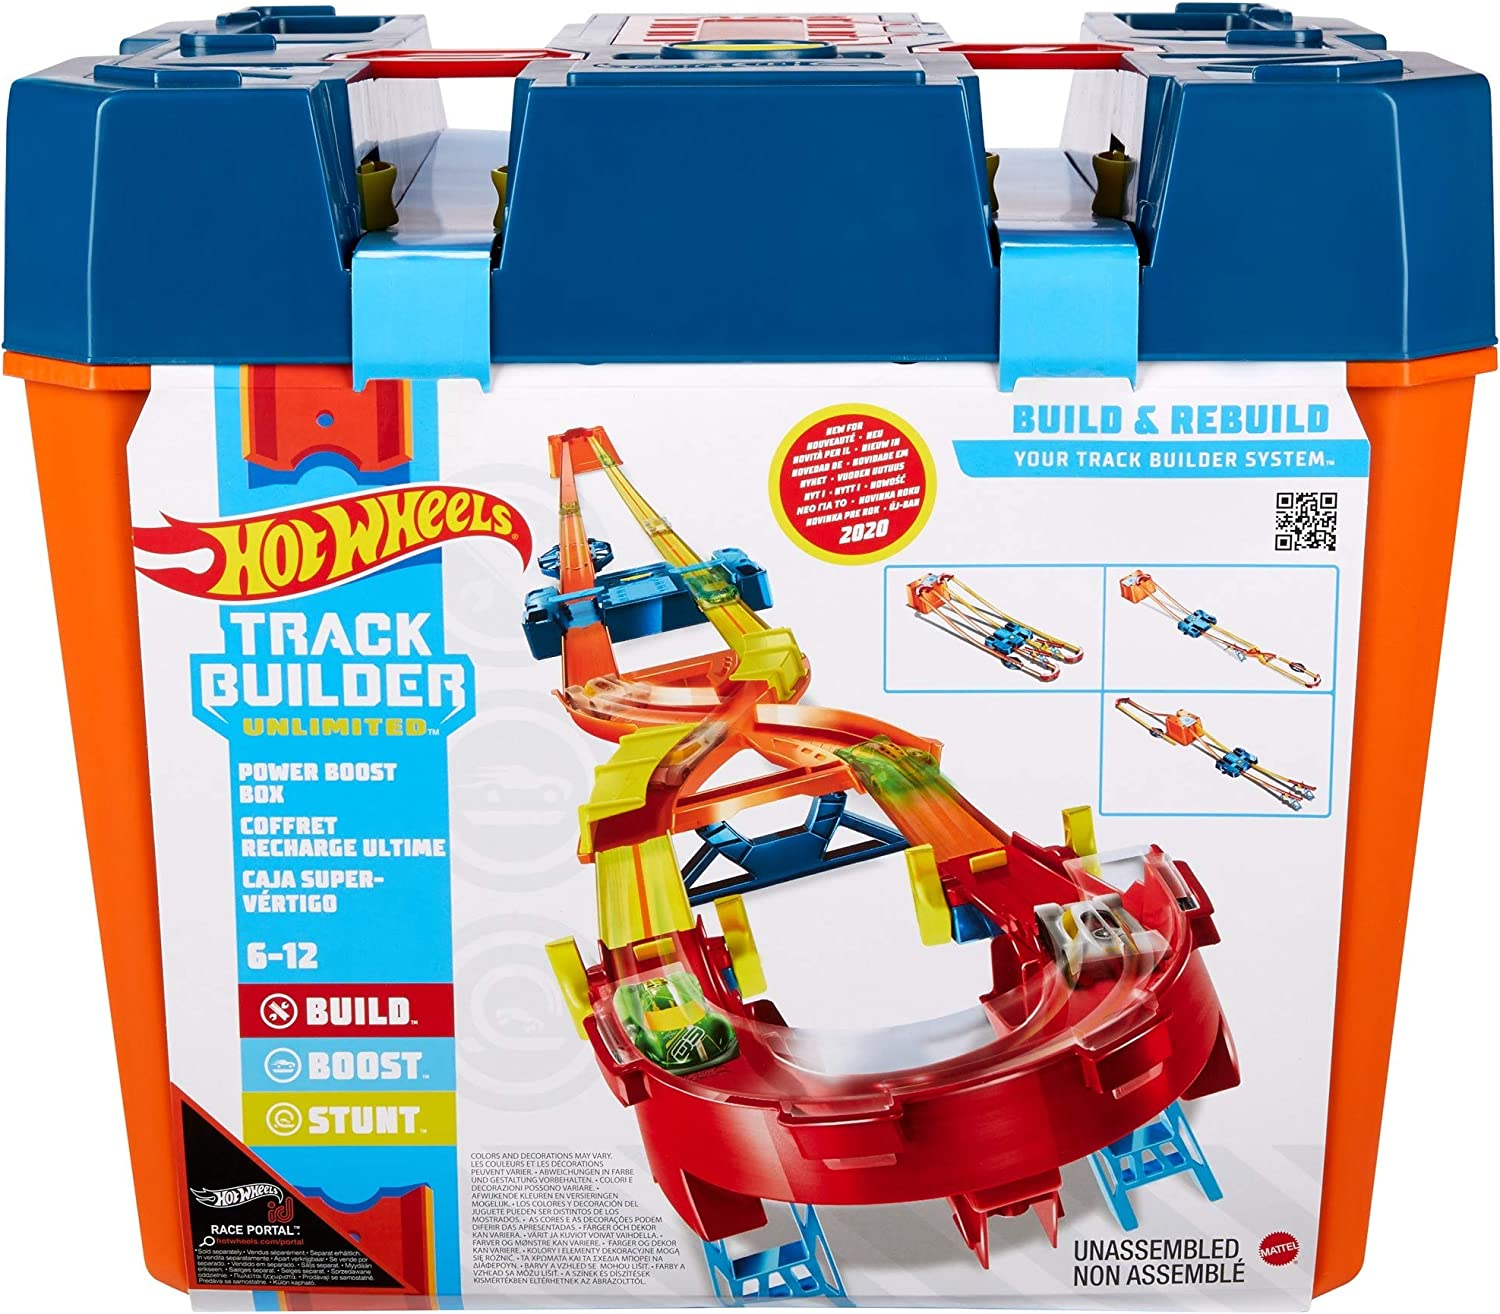 Amazon Com Hot Wheels Track Builder Unlimited Power Boost Box Compatible Id Four Plus Builds 20 Feet Of Track Gift Idea For Kids 6 7 8 9 10 And Older Toys Games